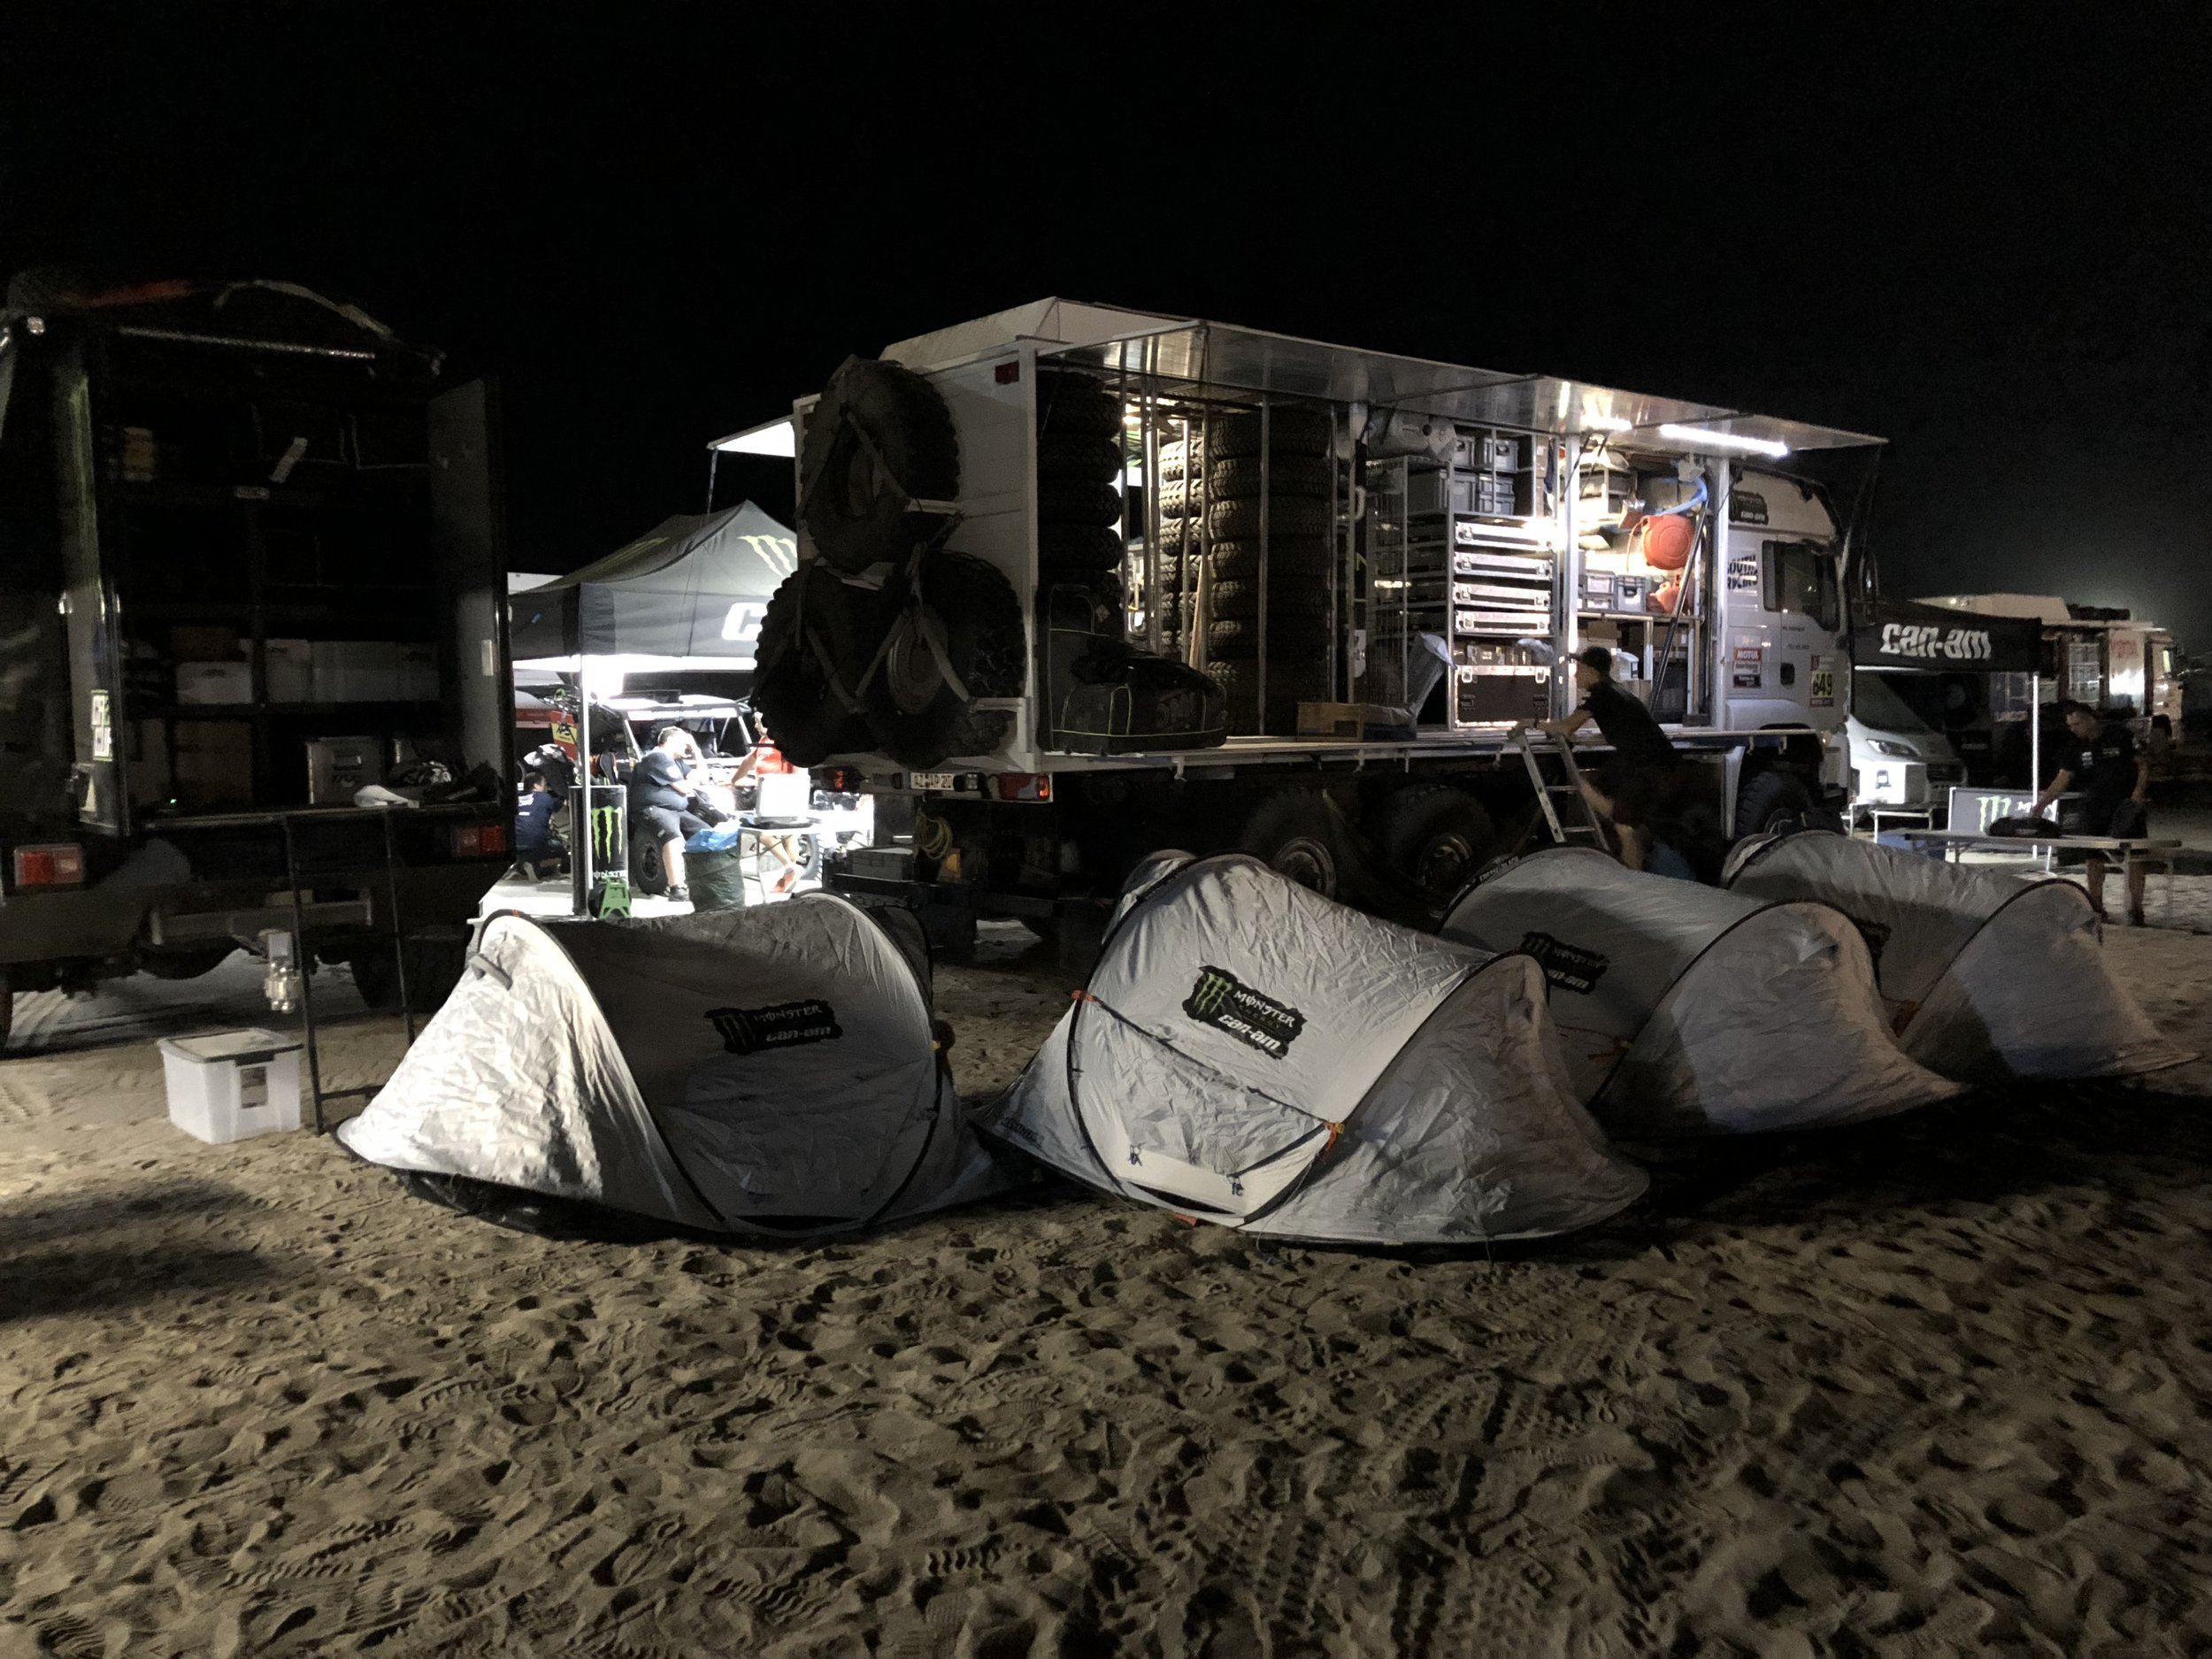 Our tents lined up right behind one of the parts trucks.